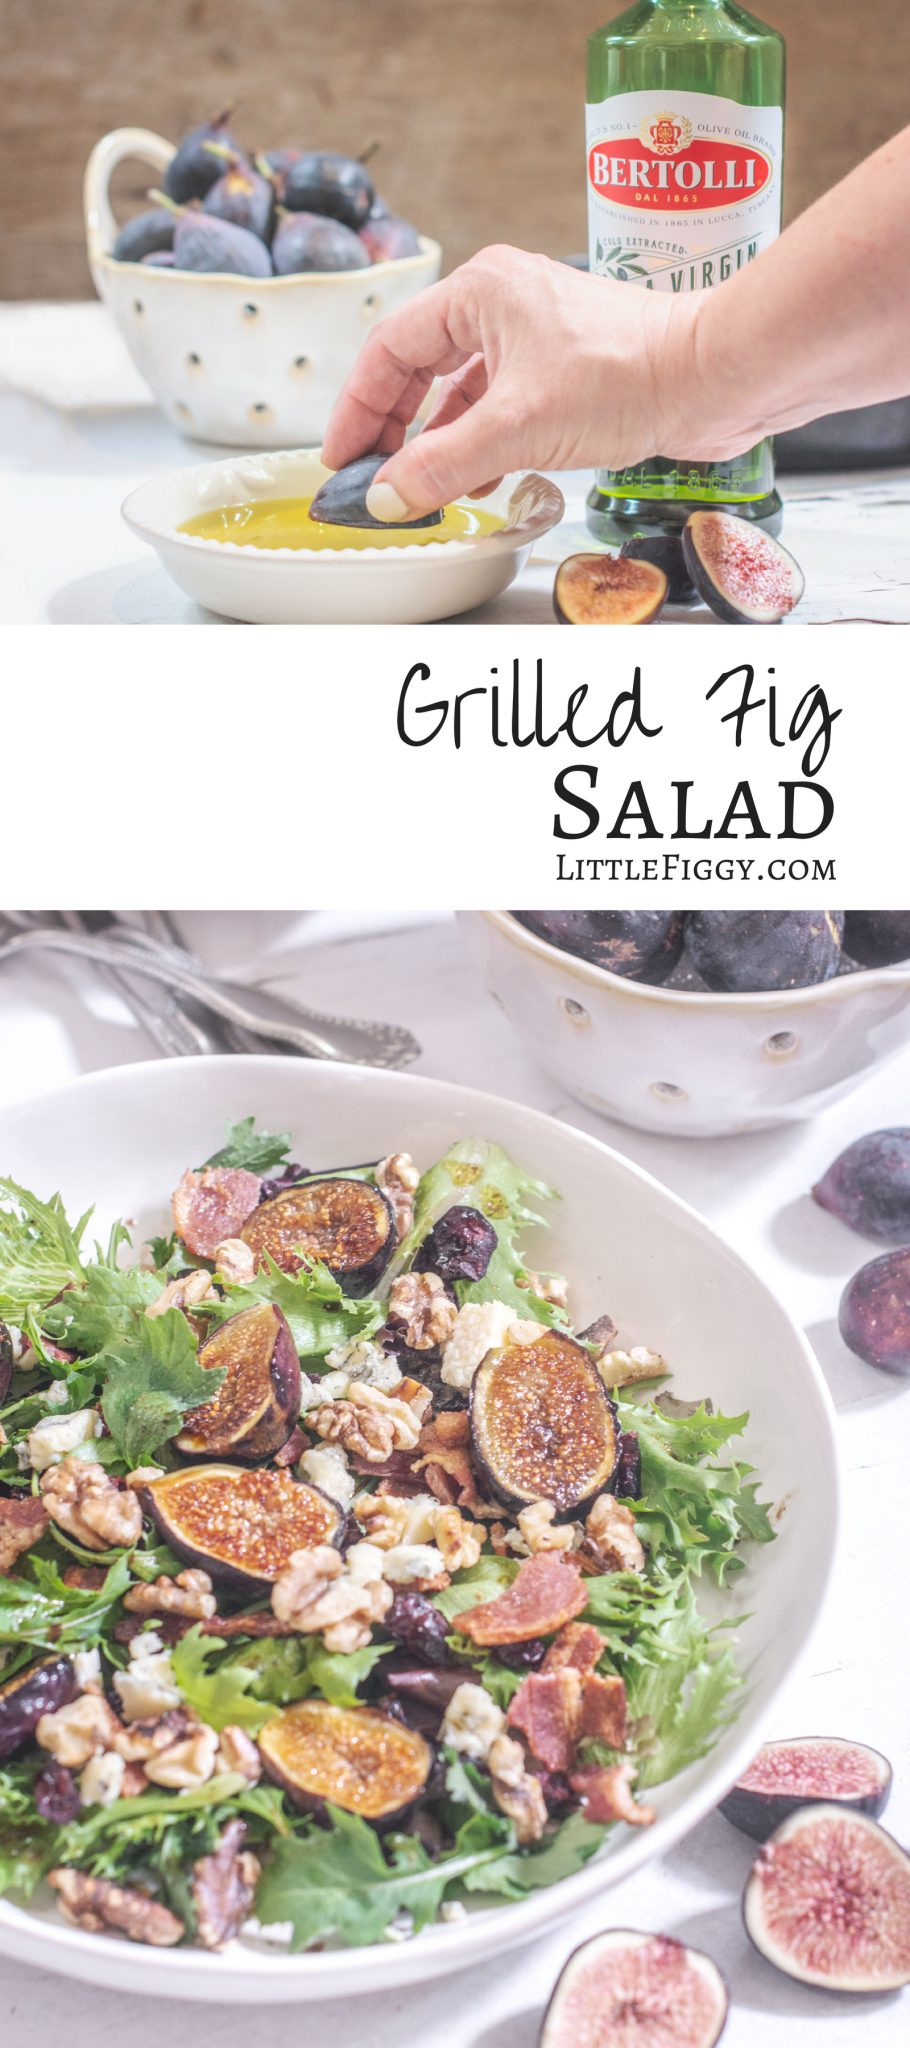 #Sponsored ~ A simple, yet elegant salad made with fresh figs - Grilled Fig Salad with blue cheese, walnuts, and Bertolli Extra Virgin Olive Oil! Get the recipe at Little Figgy Food. #TheRecipeIsSimple @Bertolli #figs #salad #recipeoftheday